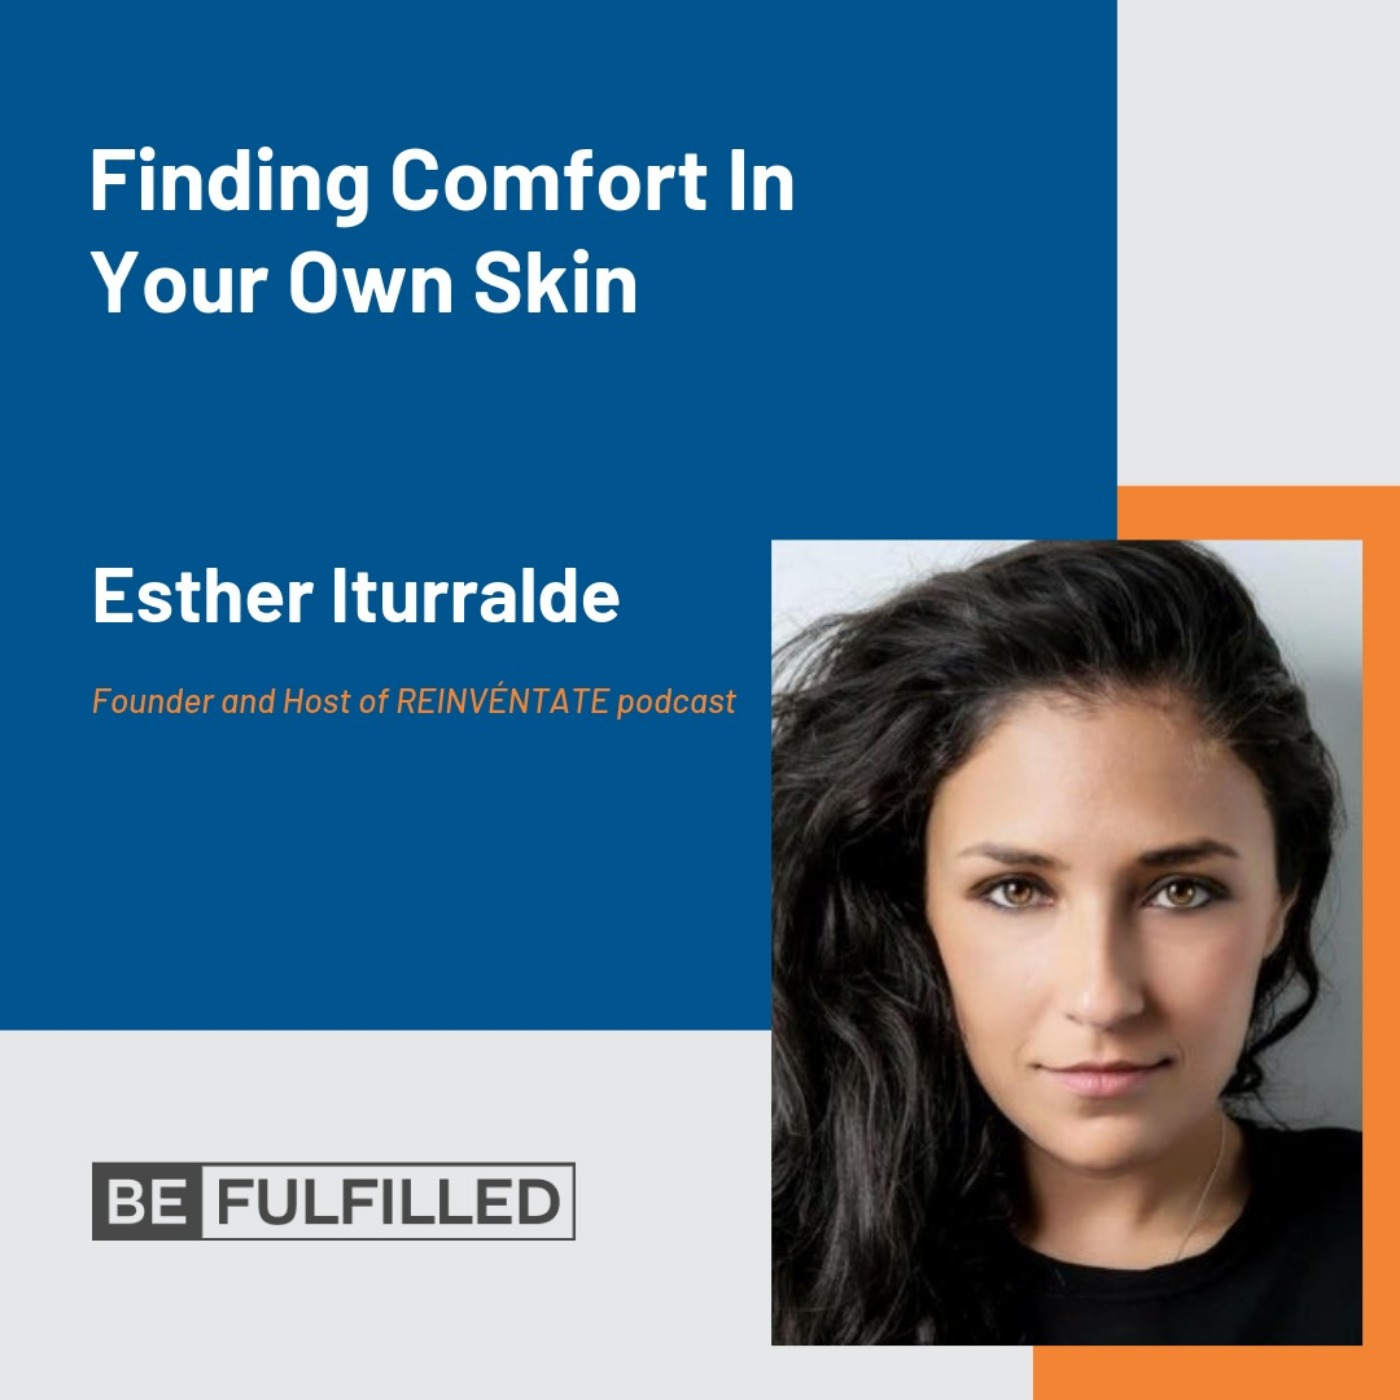 Finding Comfort In Your Own Skin - Esther Iturralde